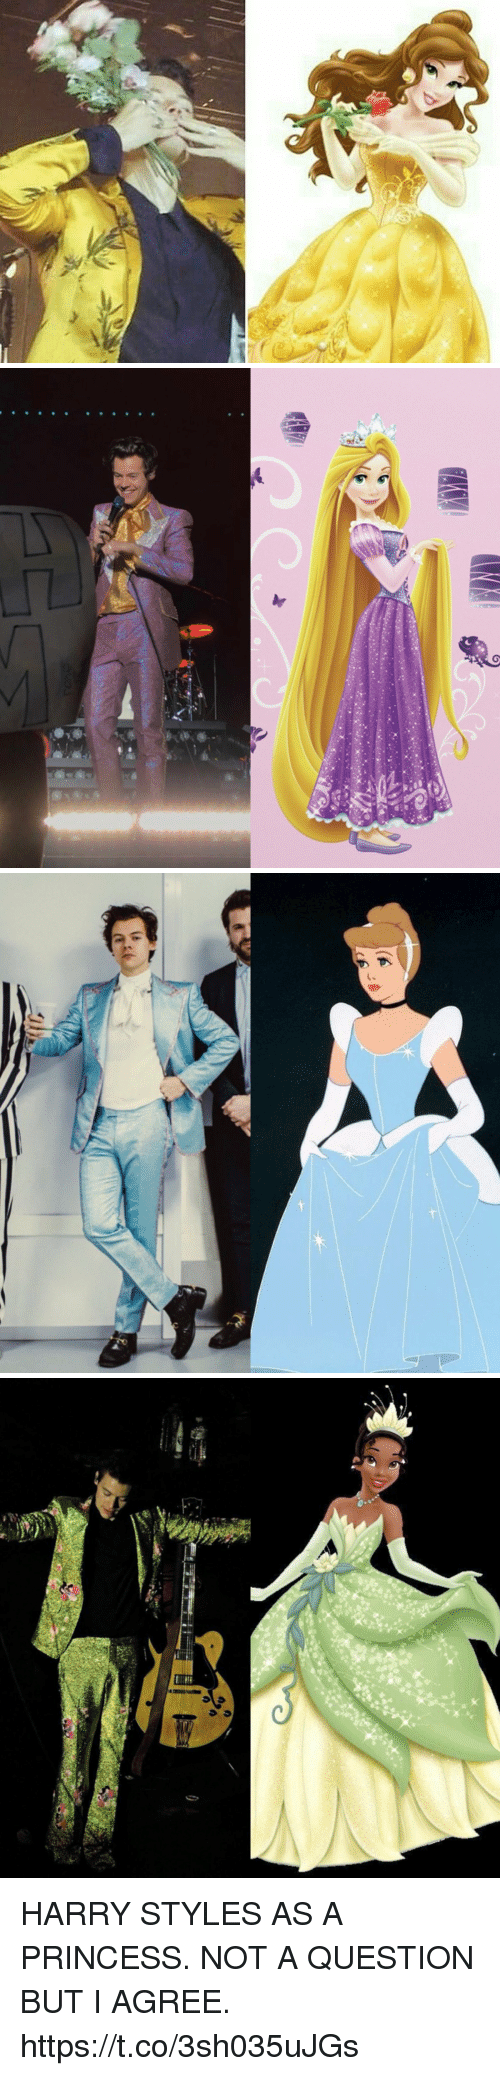 Harry Styles: HARRY STYLES AS A PRINCESS. NOT A QUESTION BUT I AGREE. https://t.co/3sh035uJGs